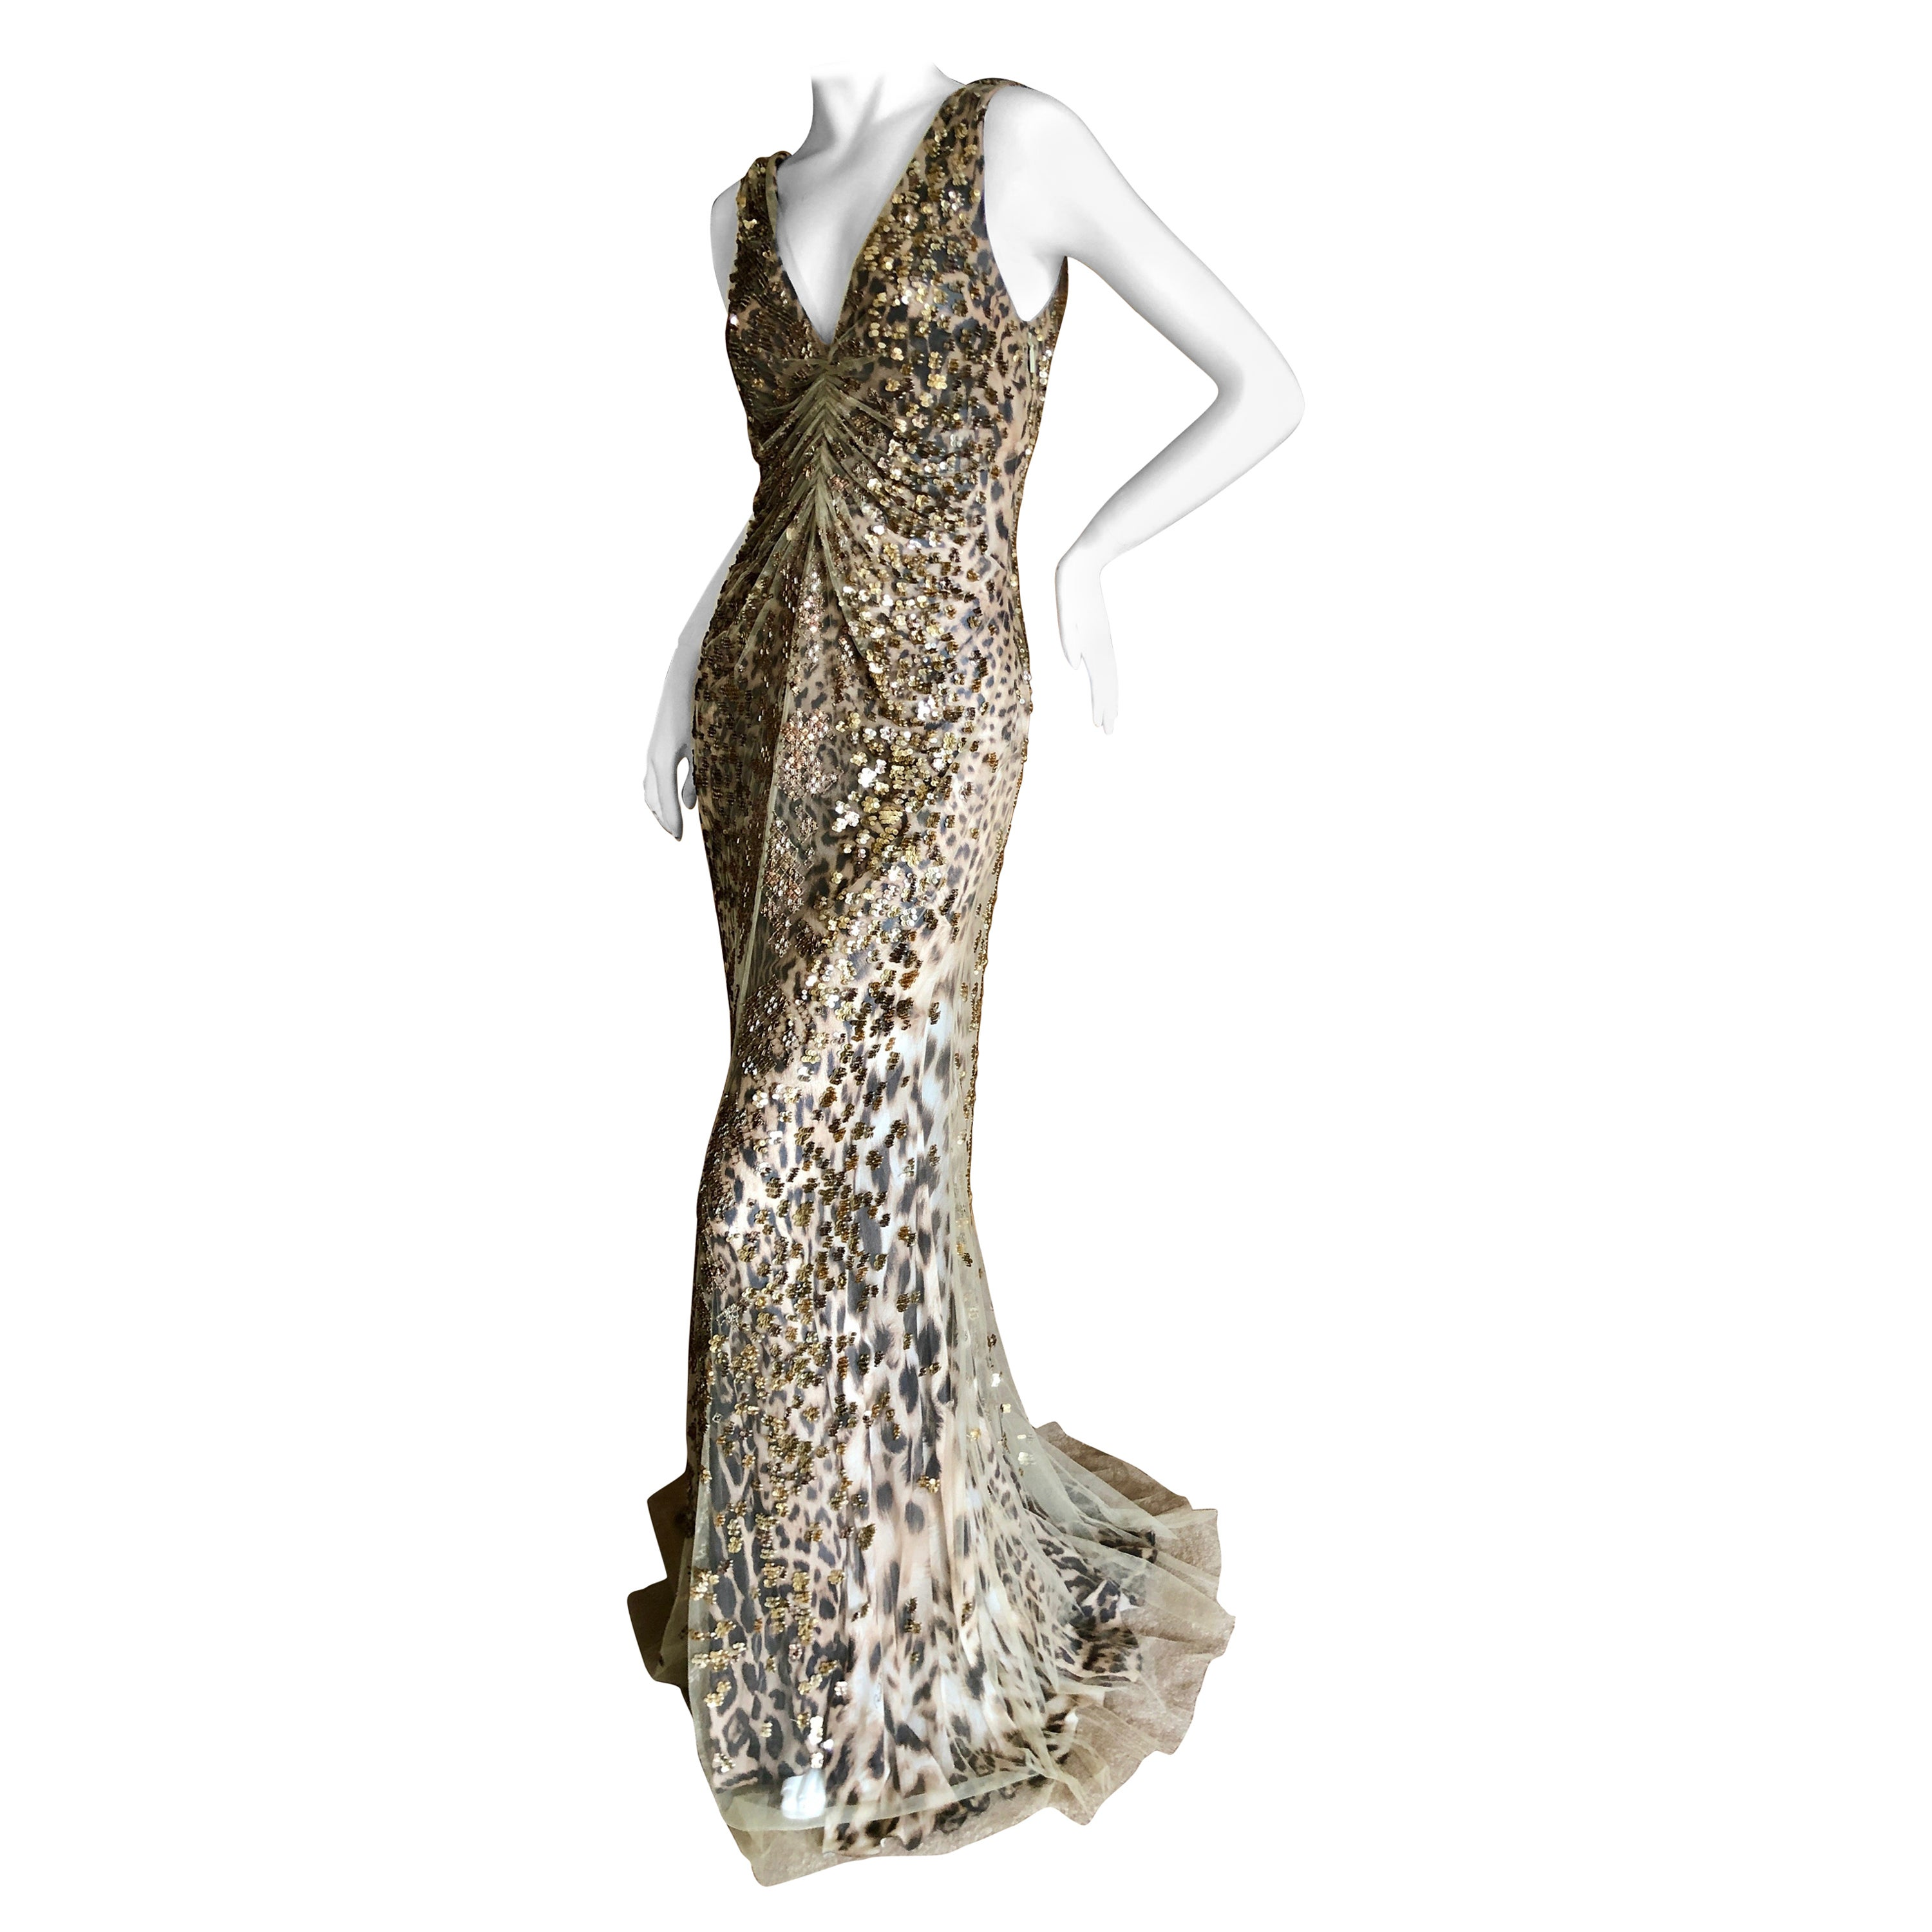 44832a6757 Roberto Cavalli Vintage Silk Leopard Print Embellished Net Overlay Evening  Dress For Sale at 1stdibs